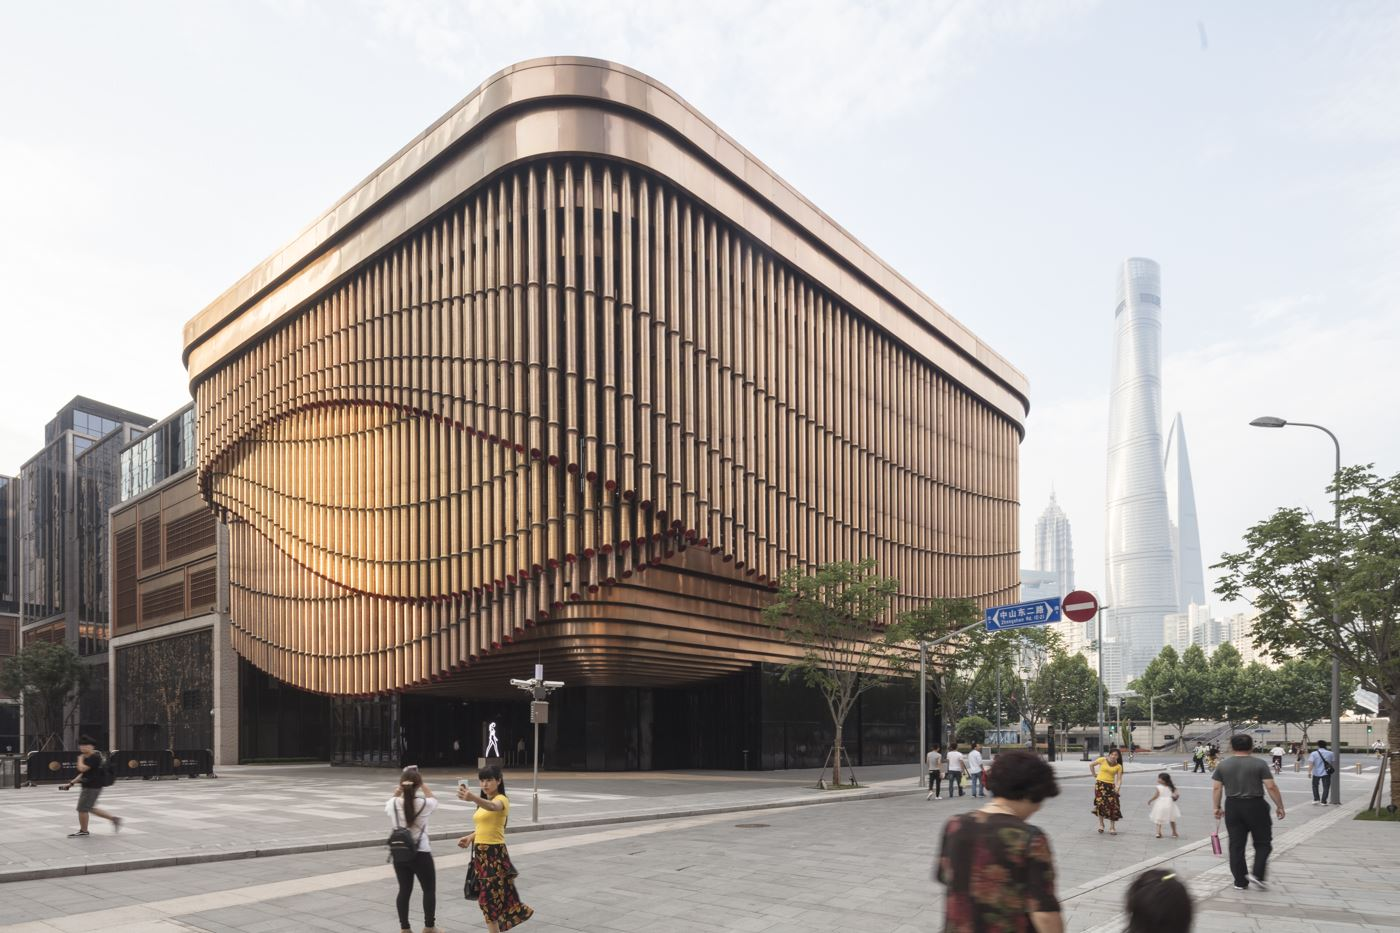 Fosun Foundation in Shanghai